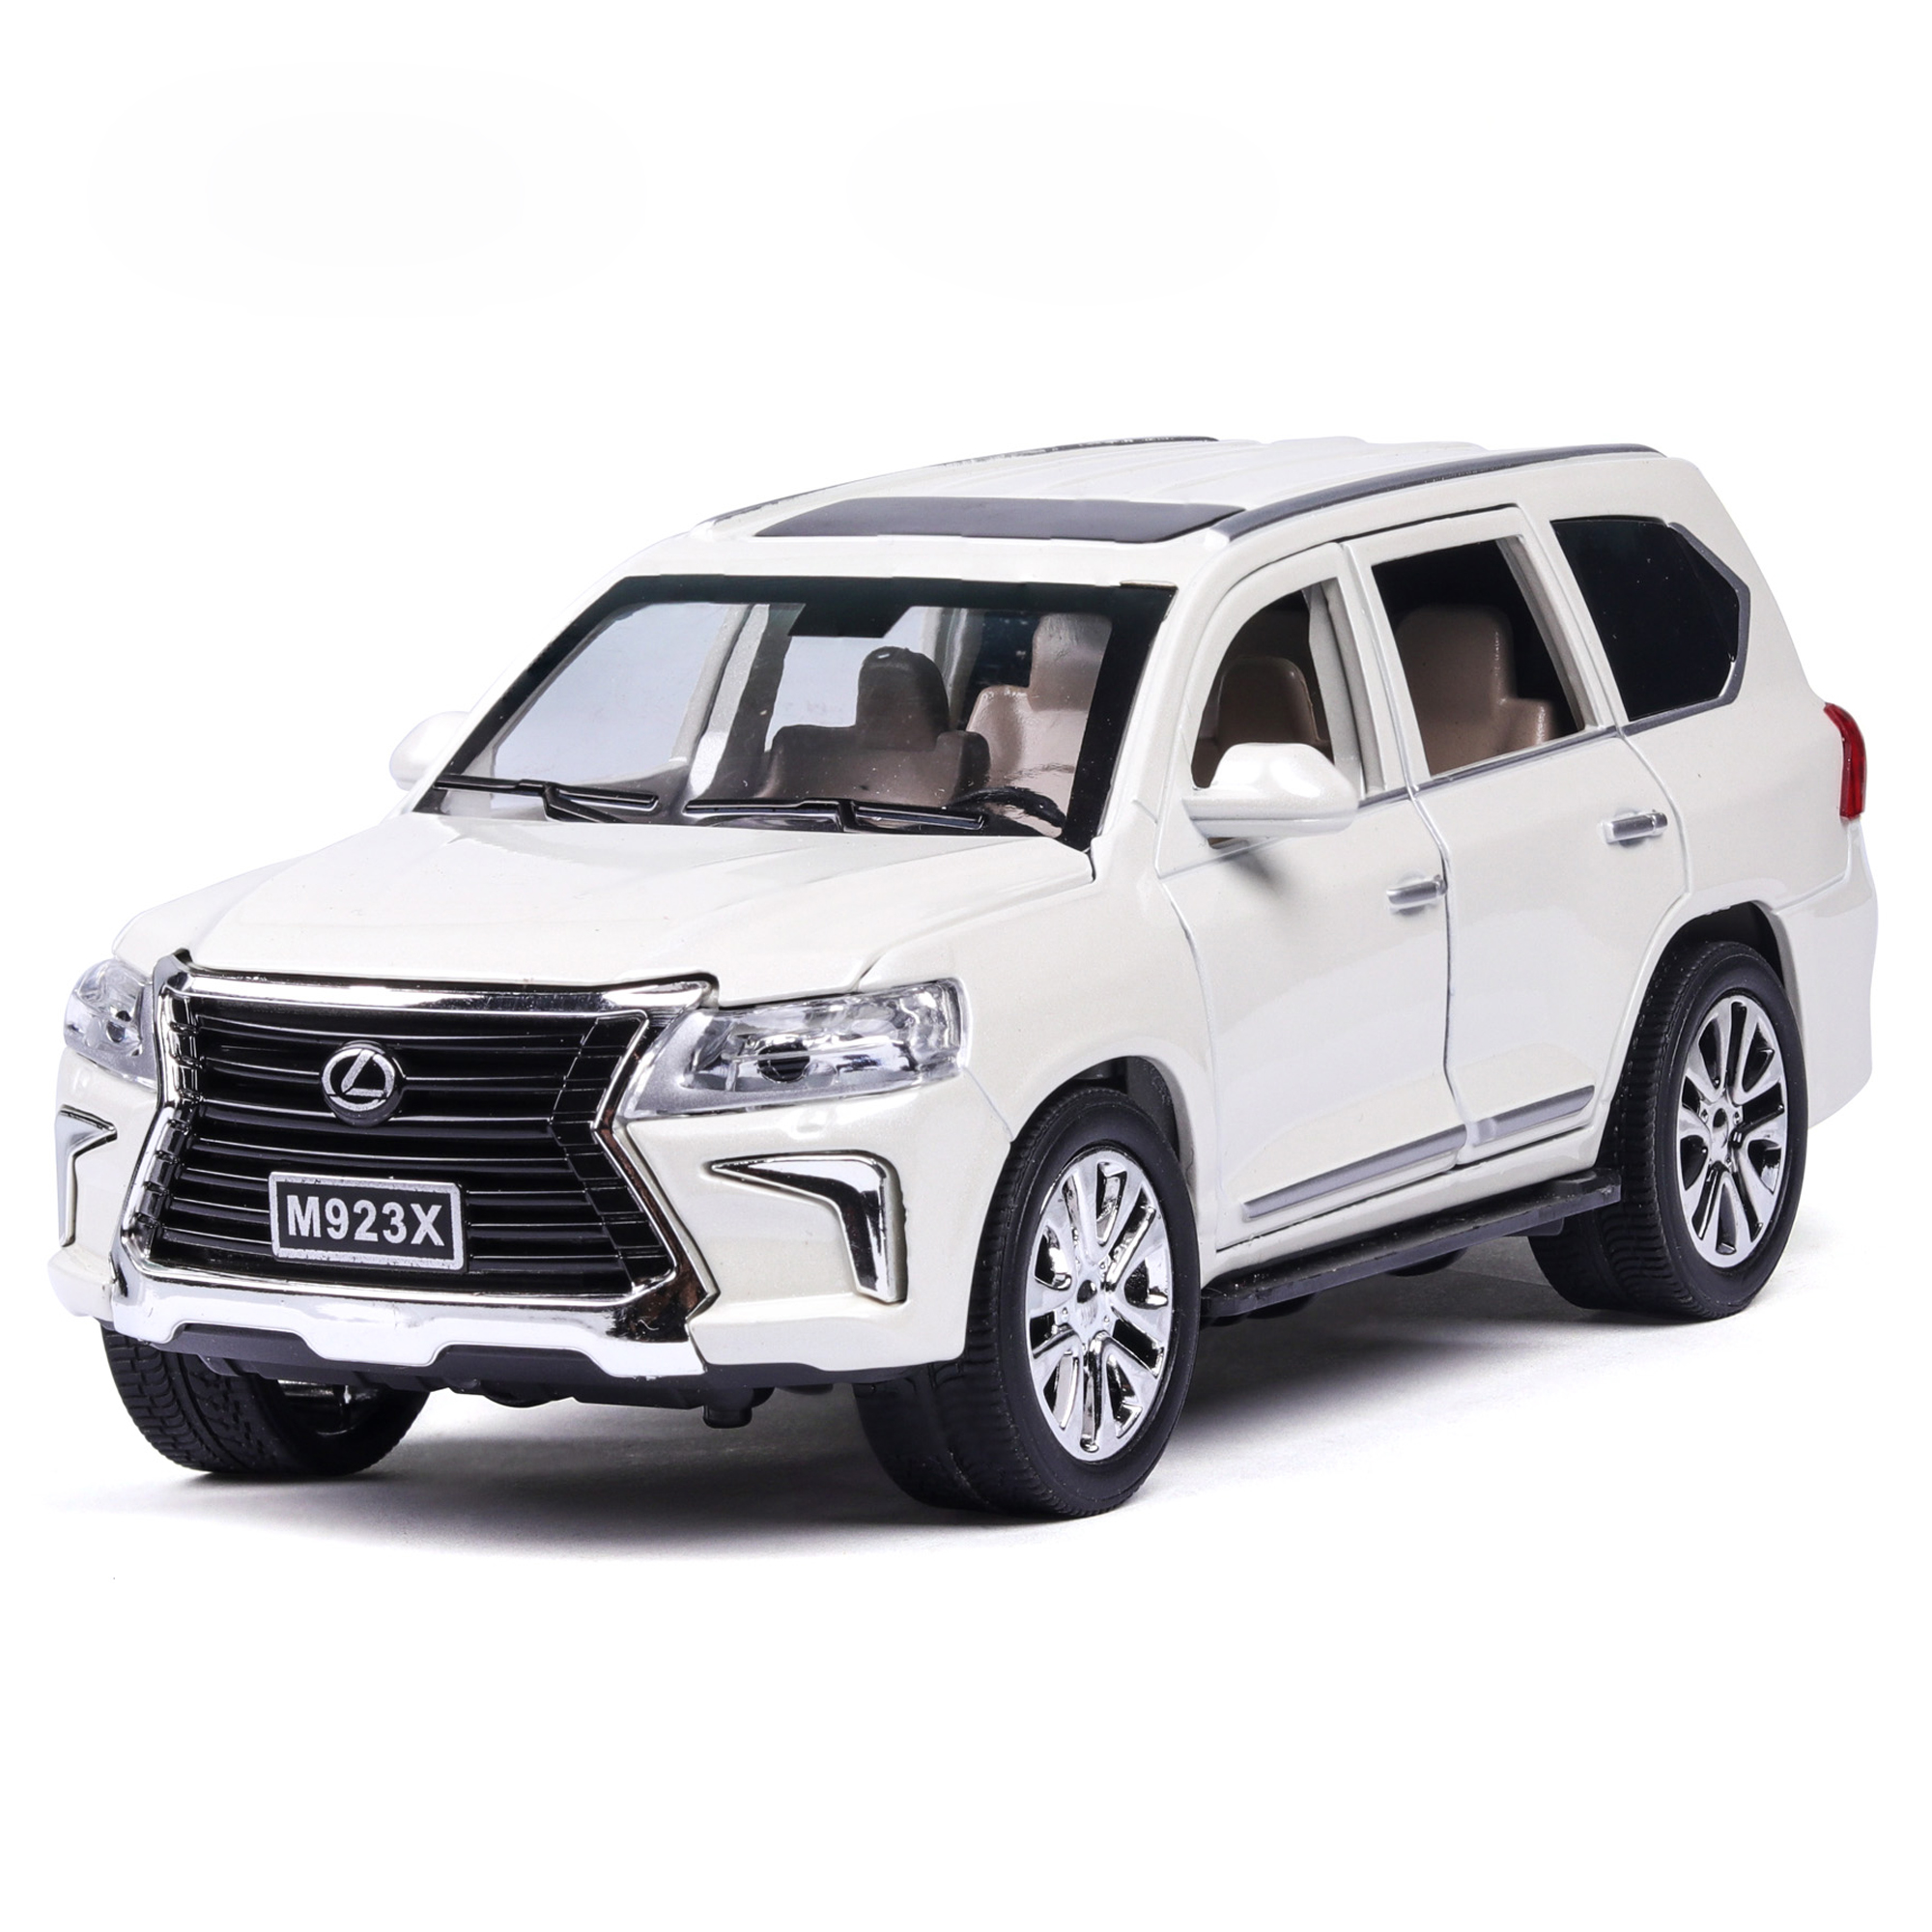 Diecast 1:24 Lexus Lx570 Off-road Vehicle Suv Simulation Alloy Car Model 6 Door Sound Light Pull Back Car Kids Toys Ornaments